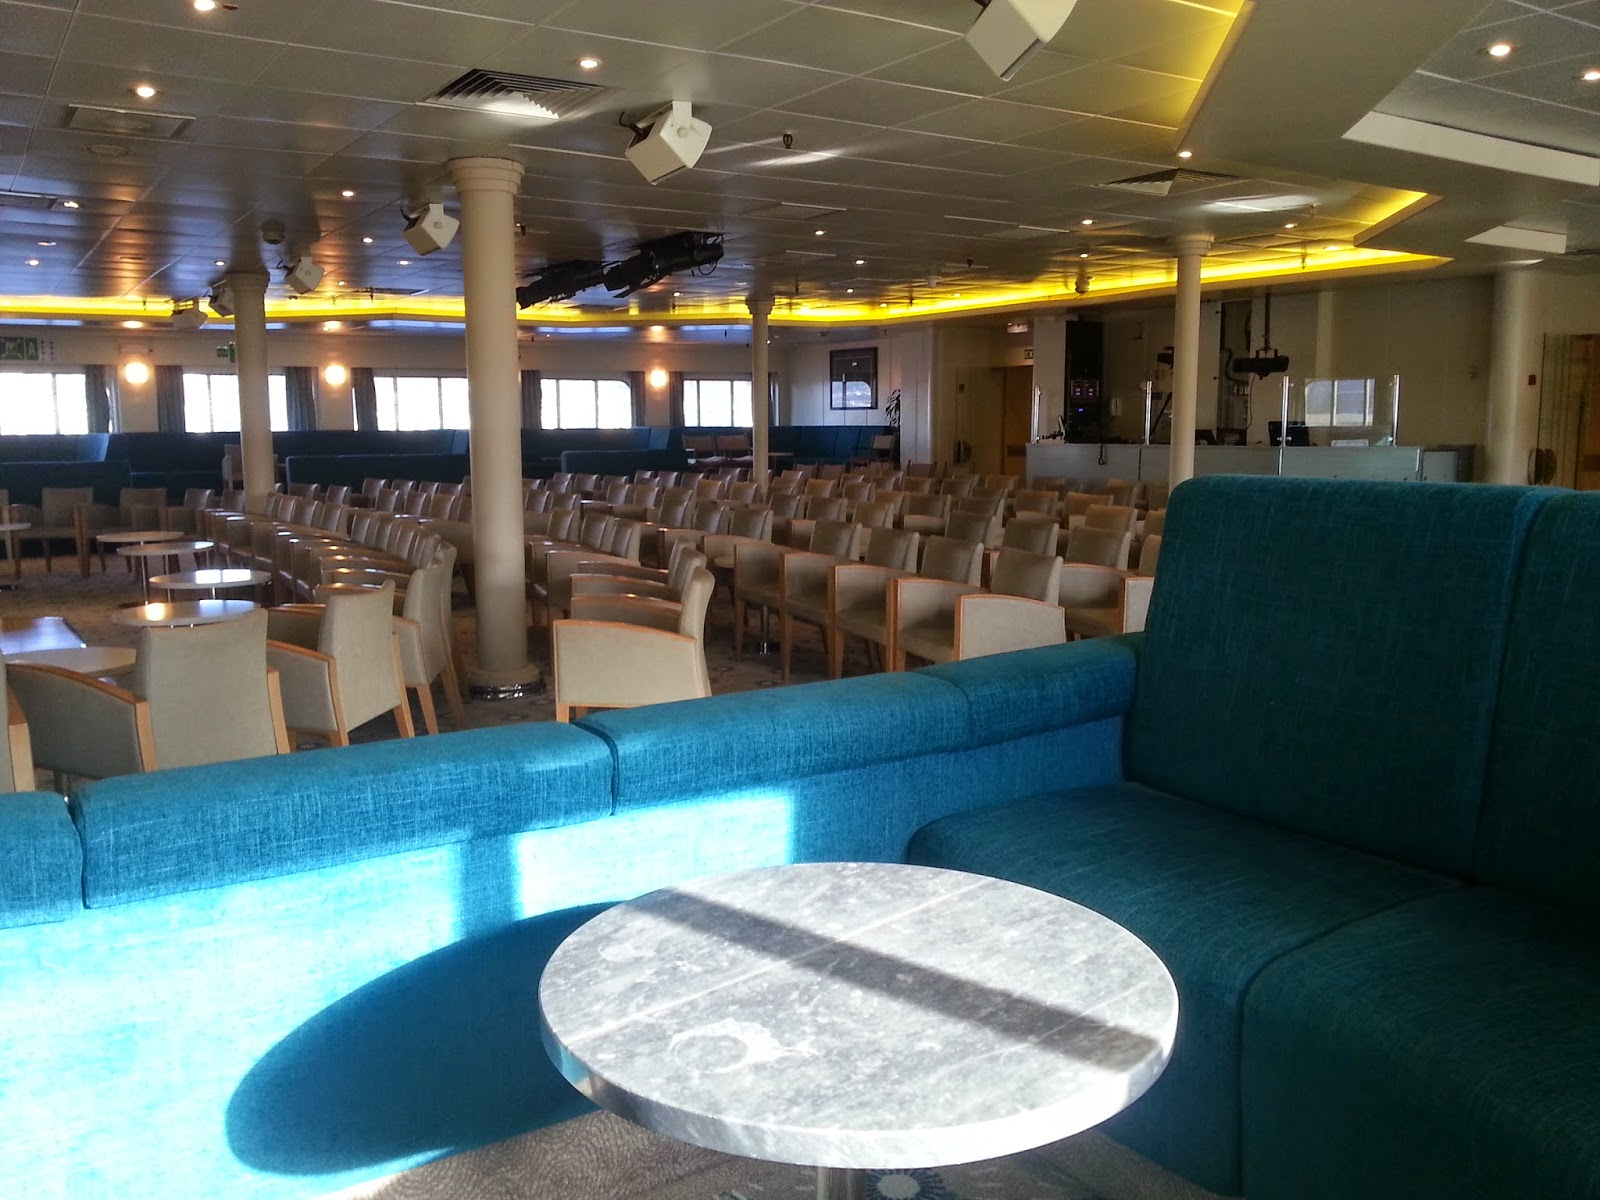 On Board Voyages of Discovery's Cruise Ship MV Voyager - Darwin Lounge